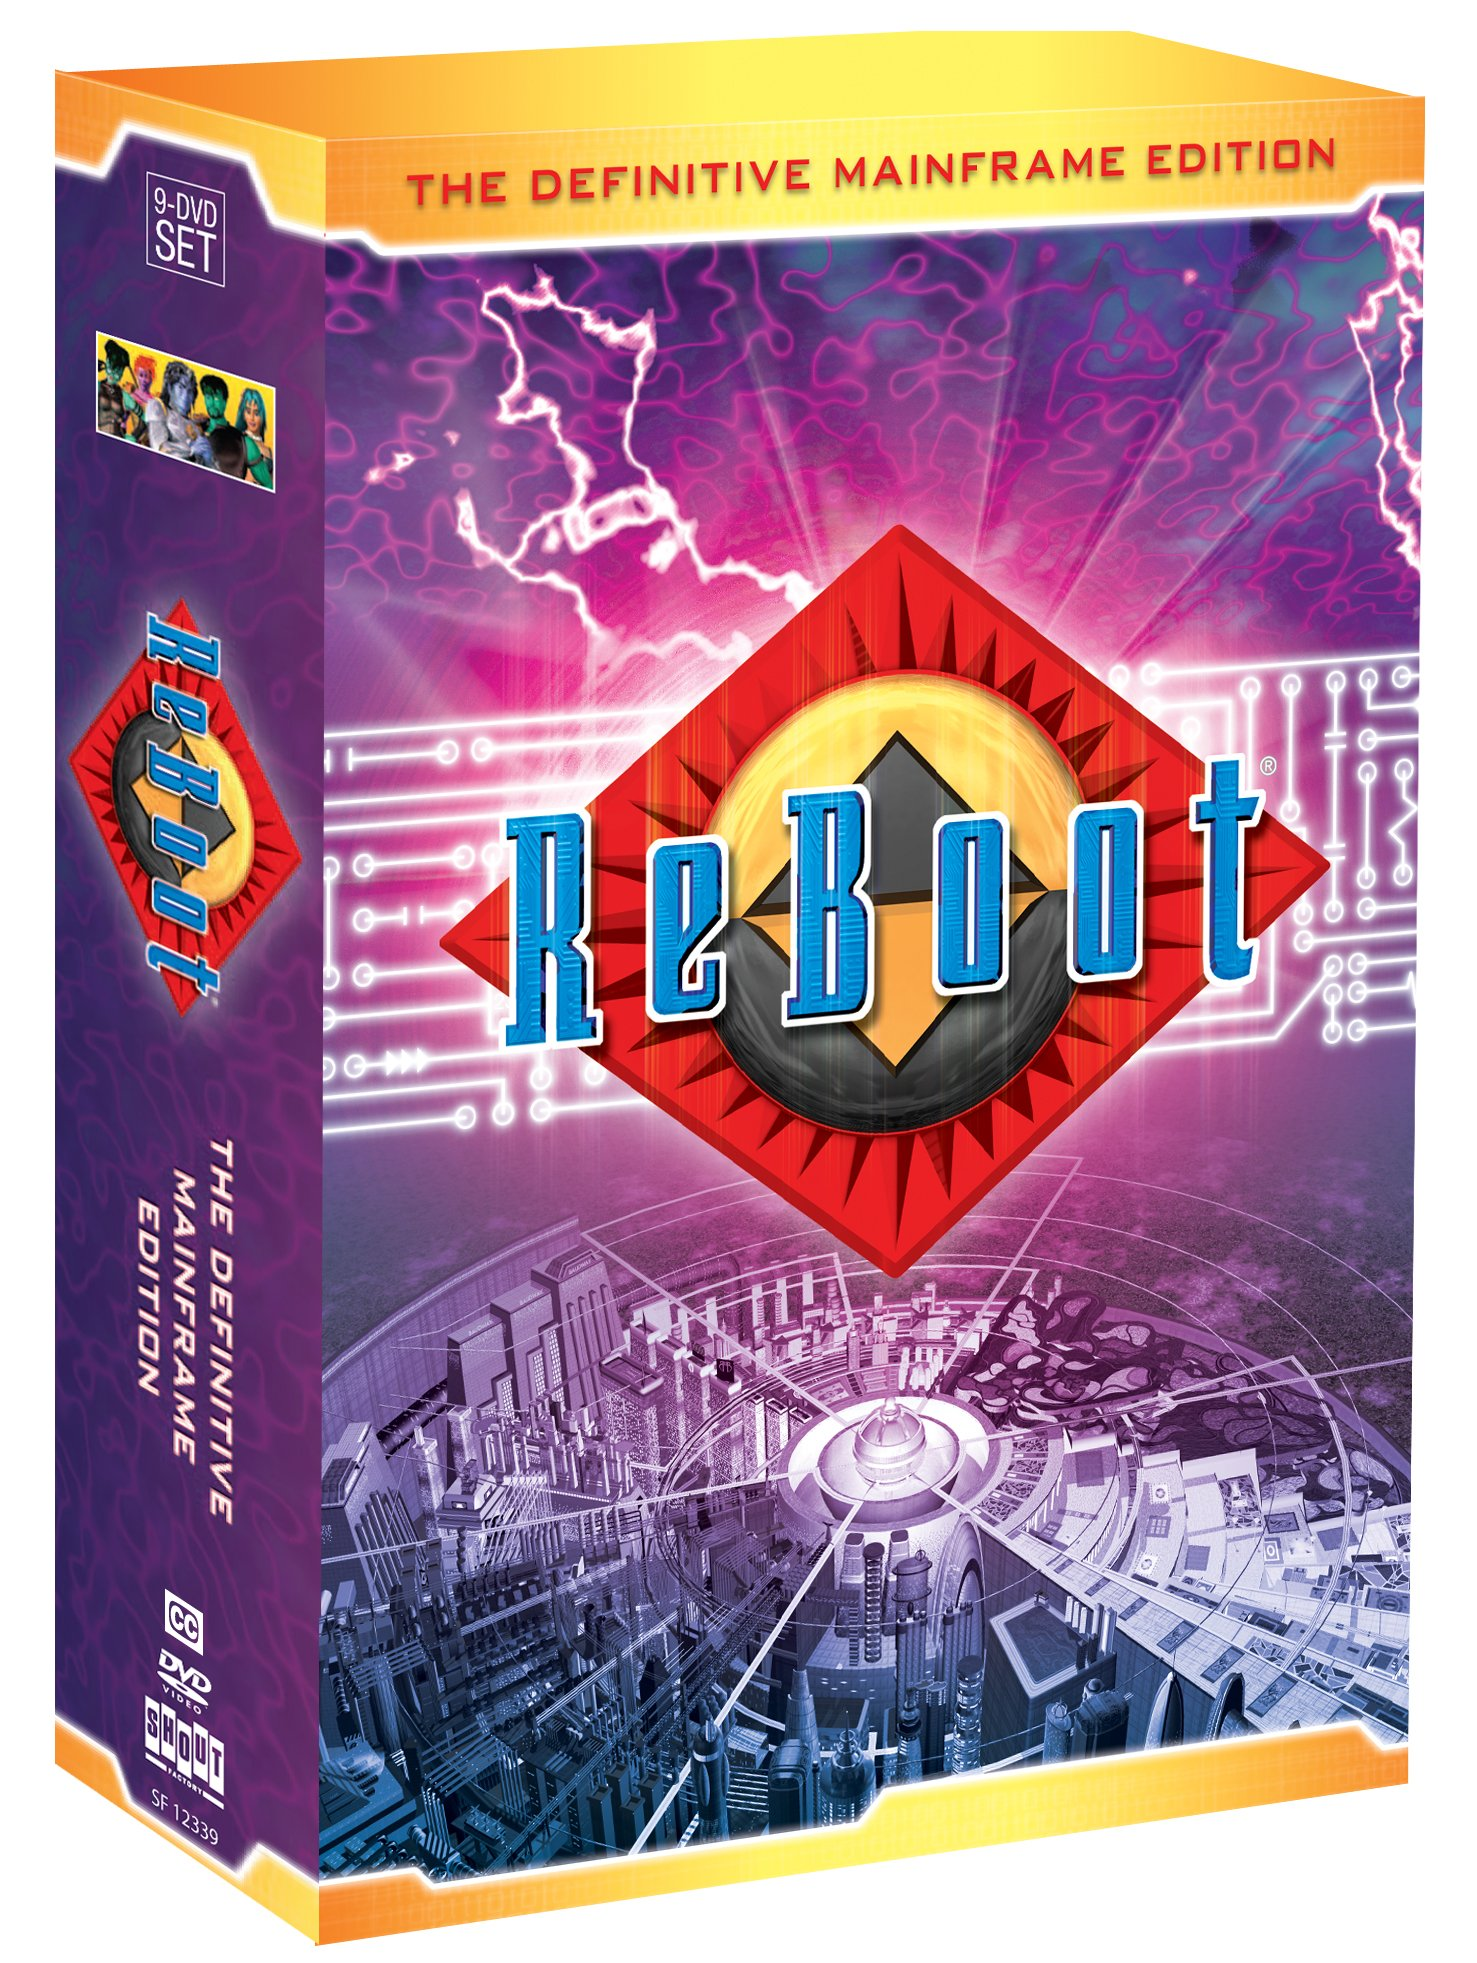 ReBoot: The Definitive Mainframe Edition by Shout! Factory